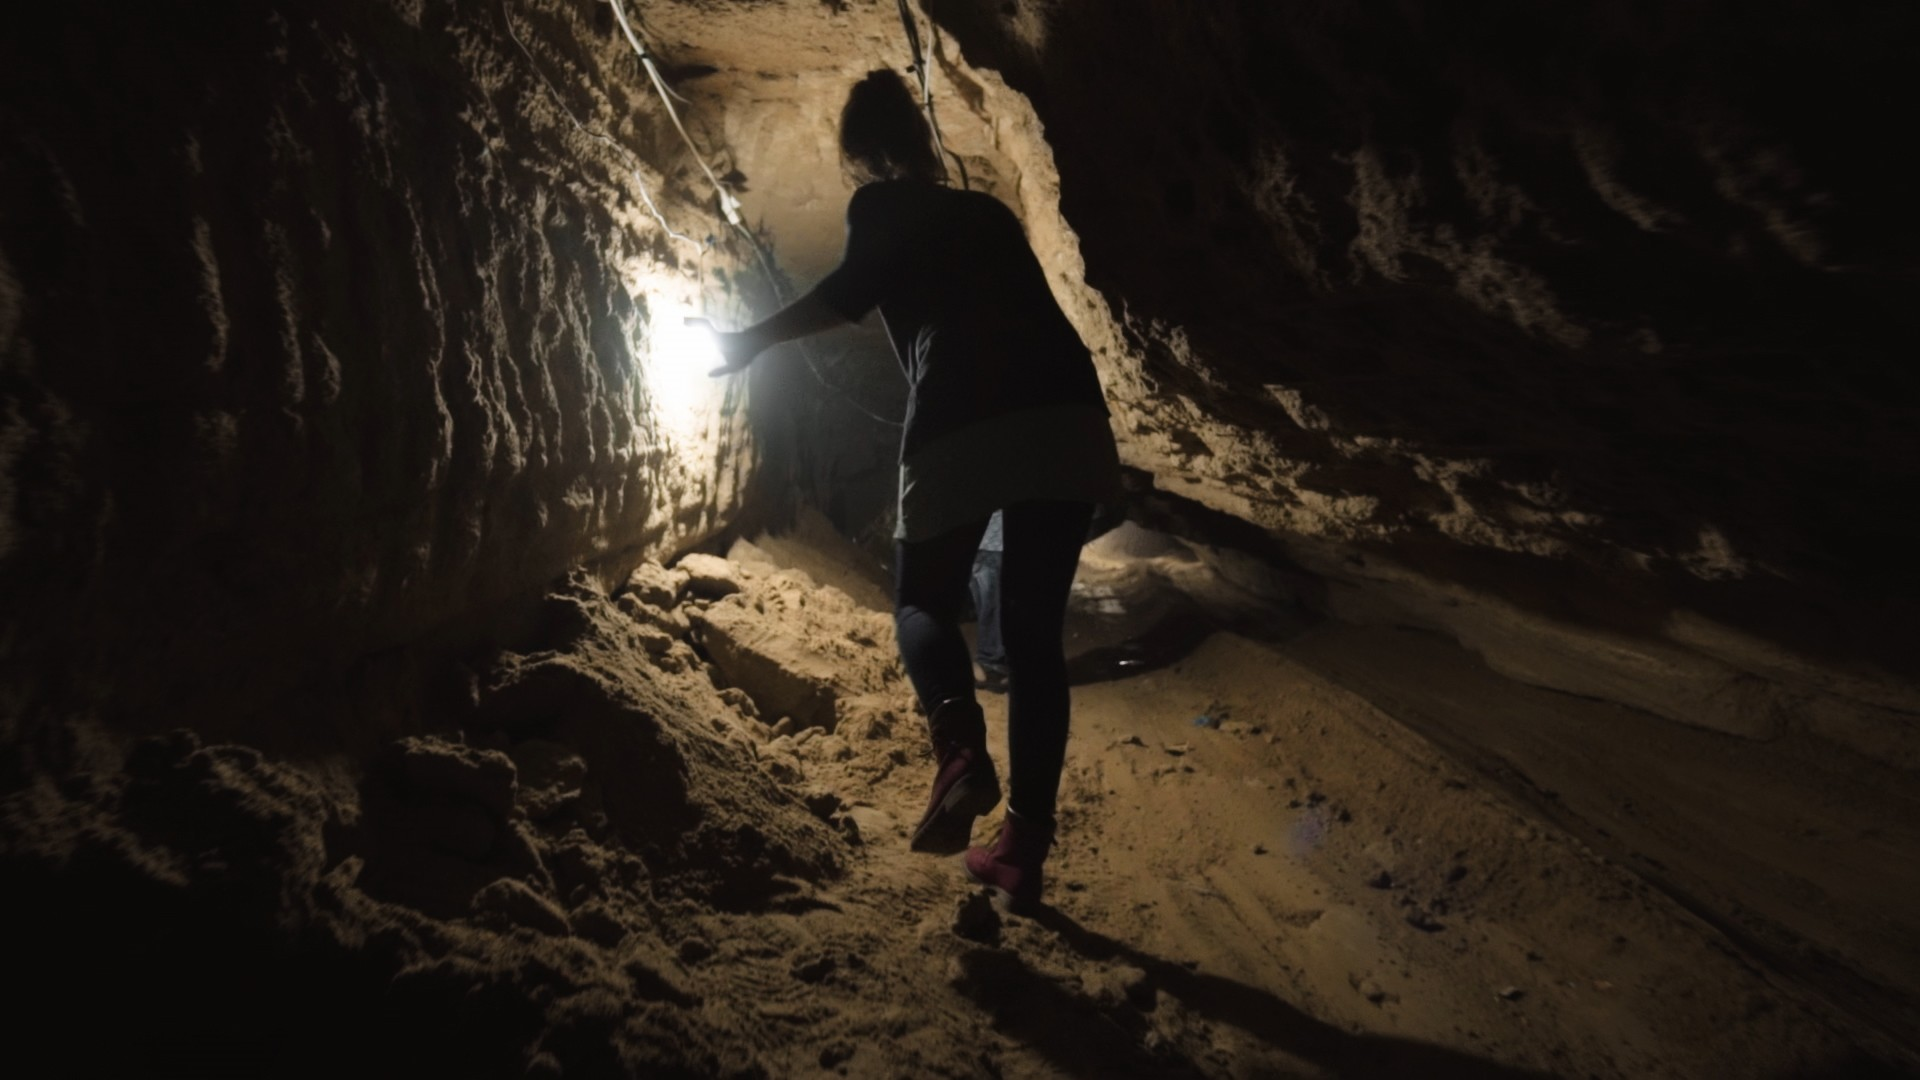 The Tunnels of Gaza